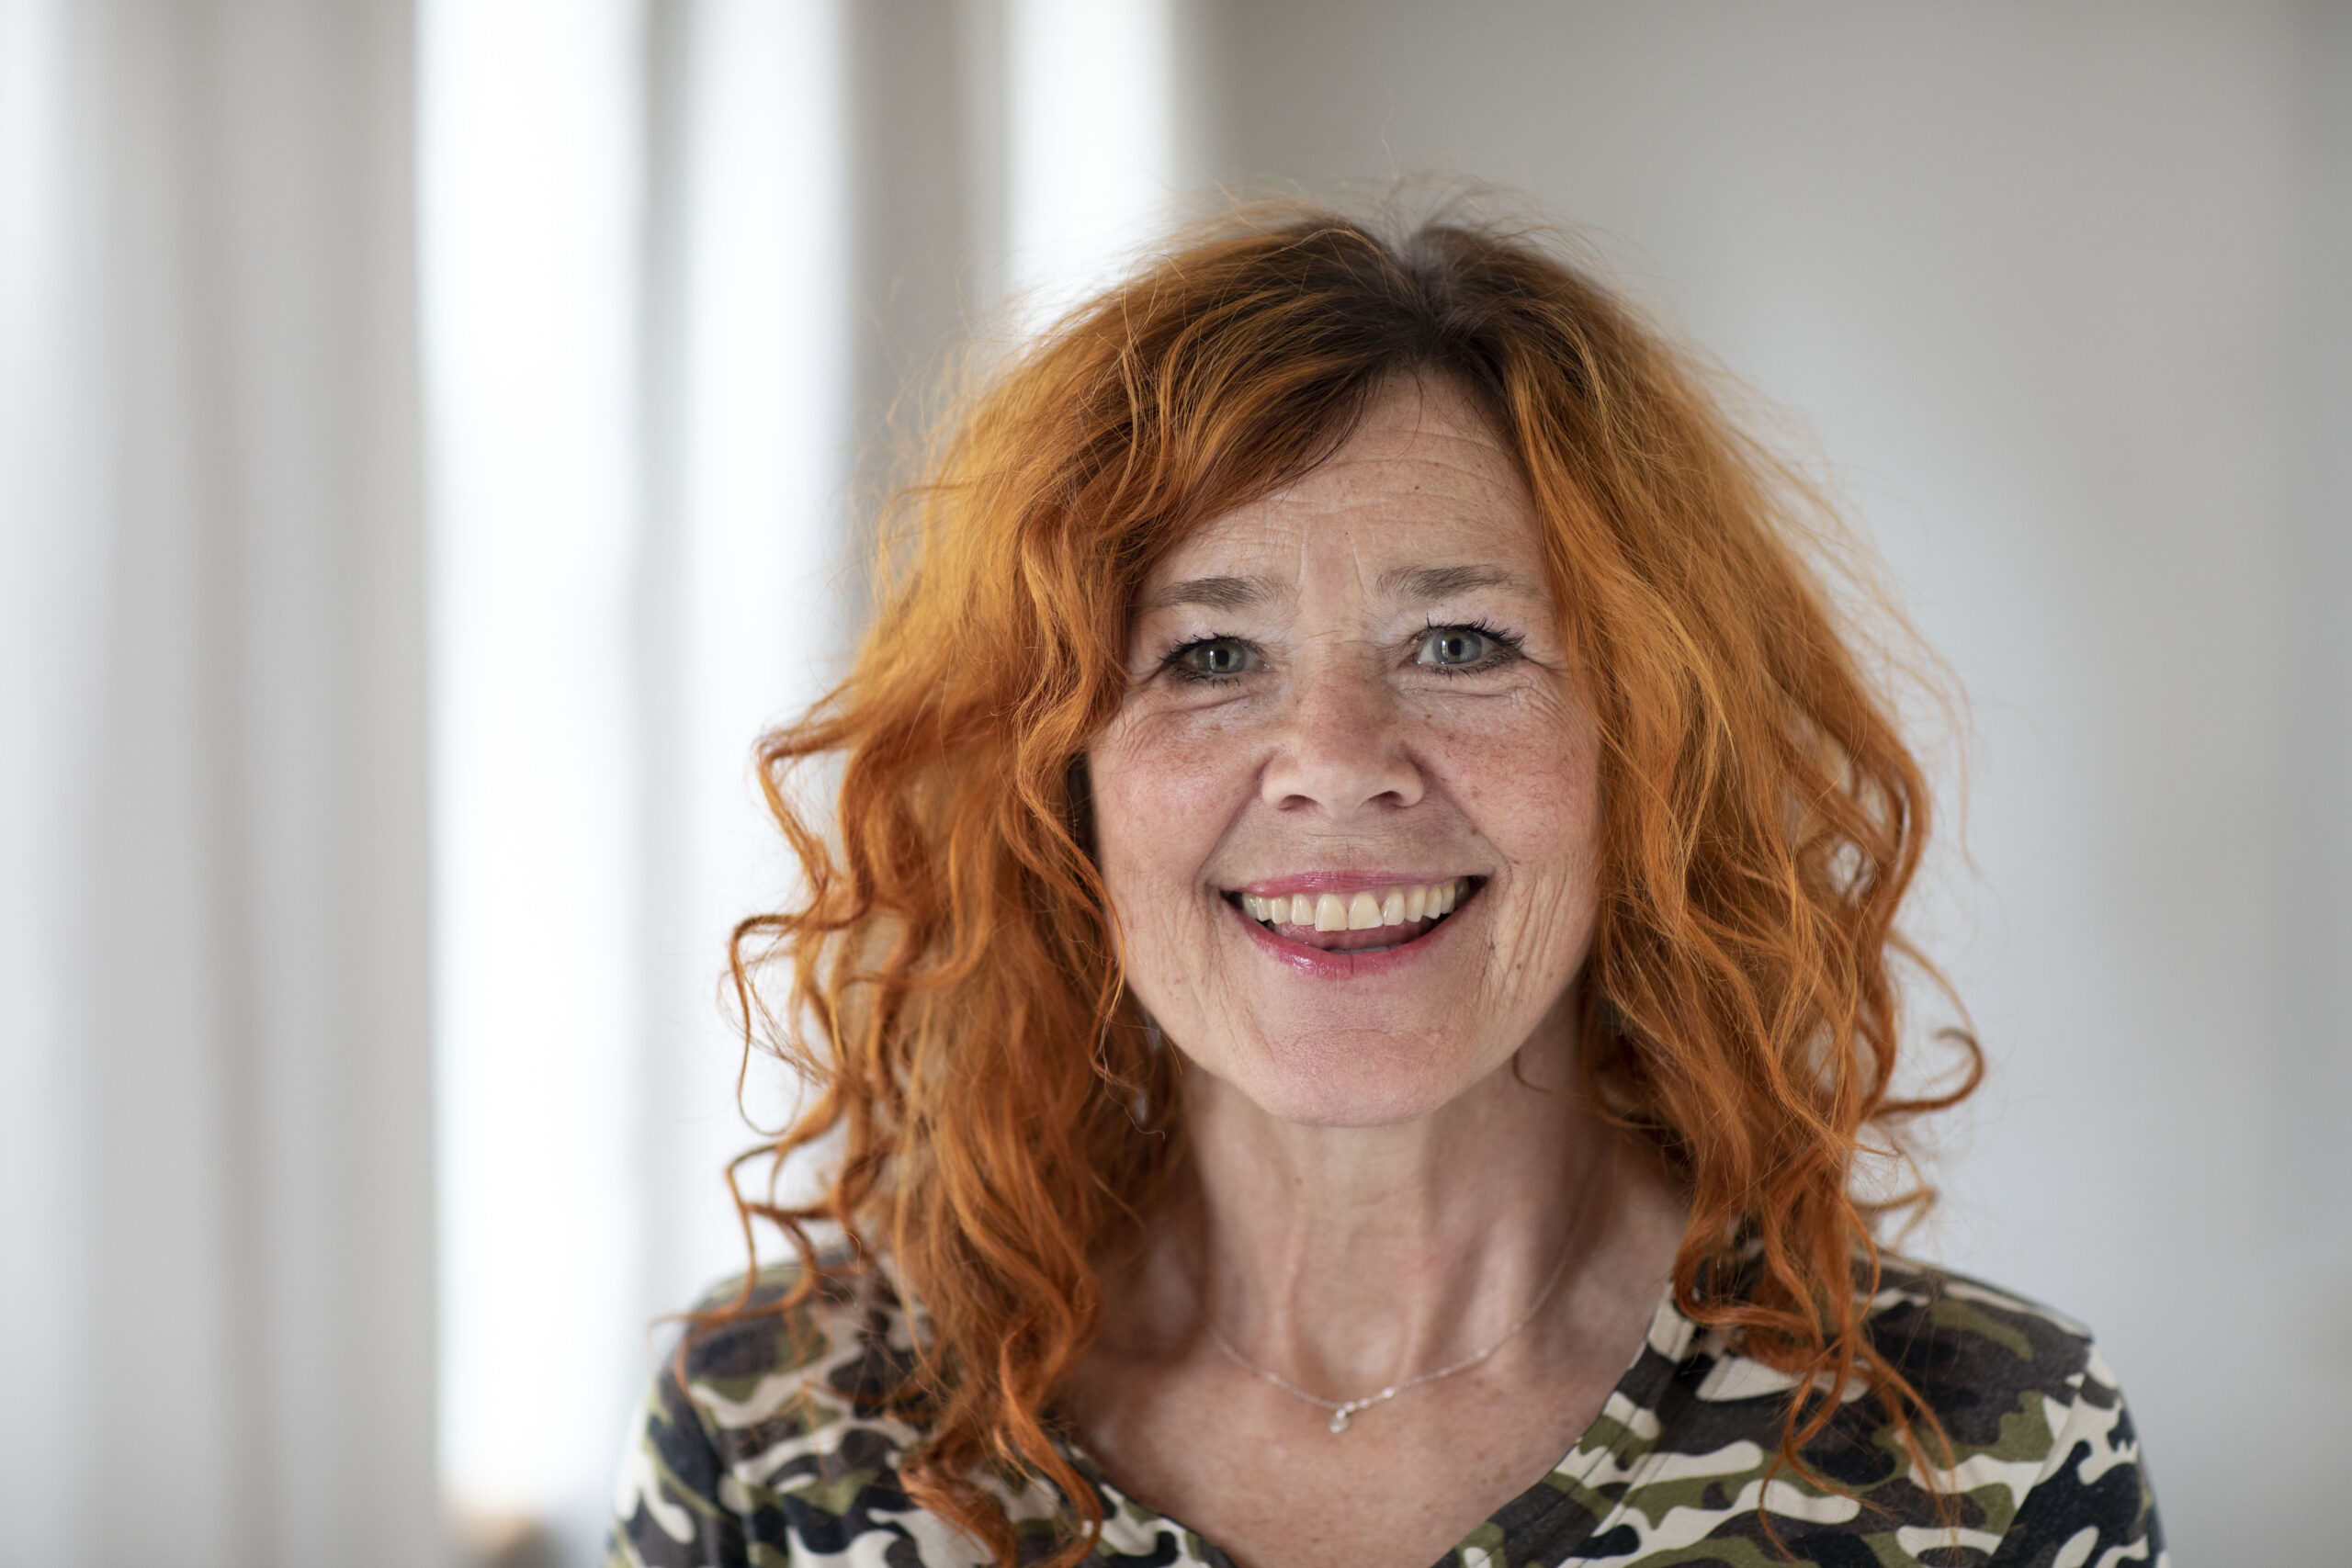 She is Denmark's most famous sexologist and now promoting Femilog's new app for women in menopause